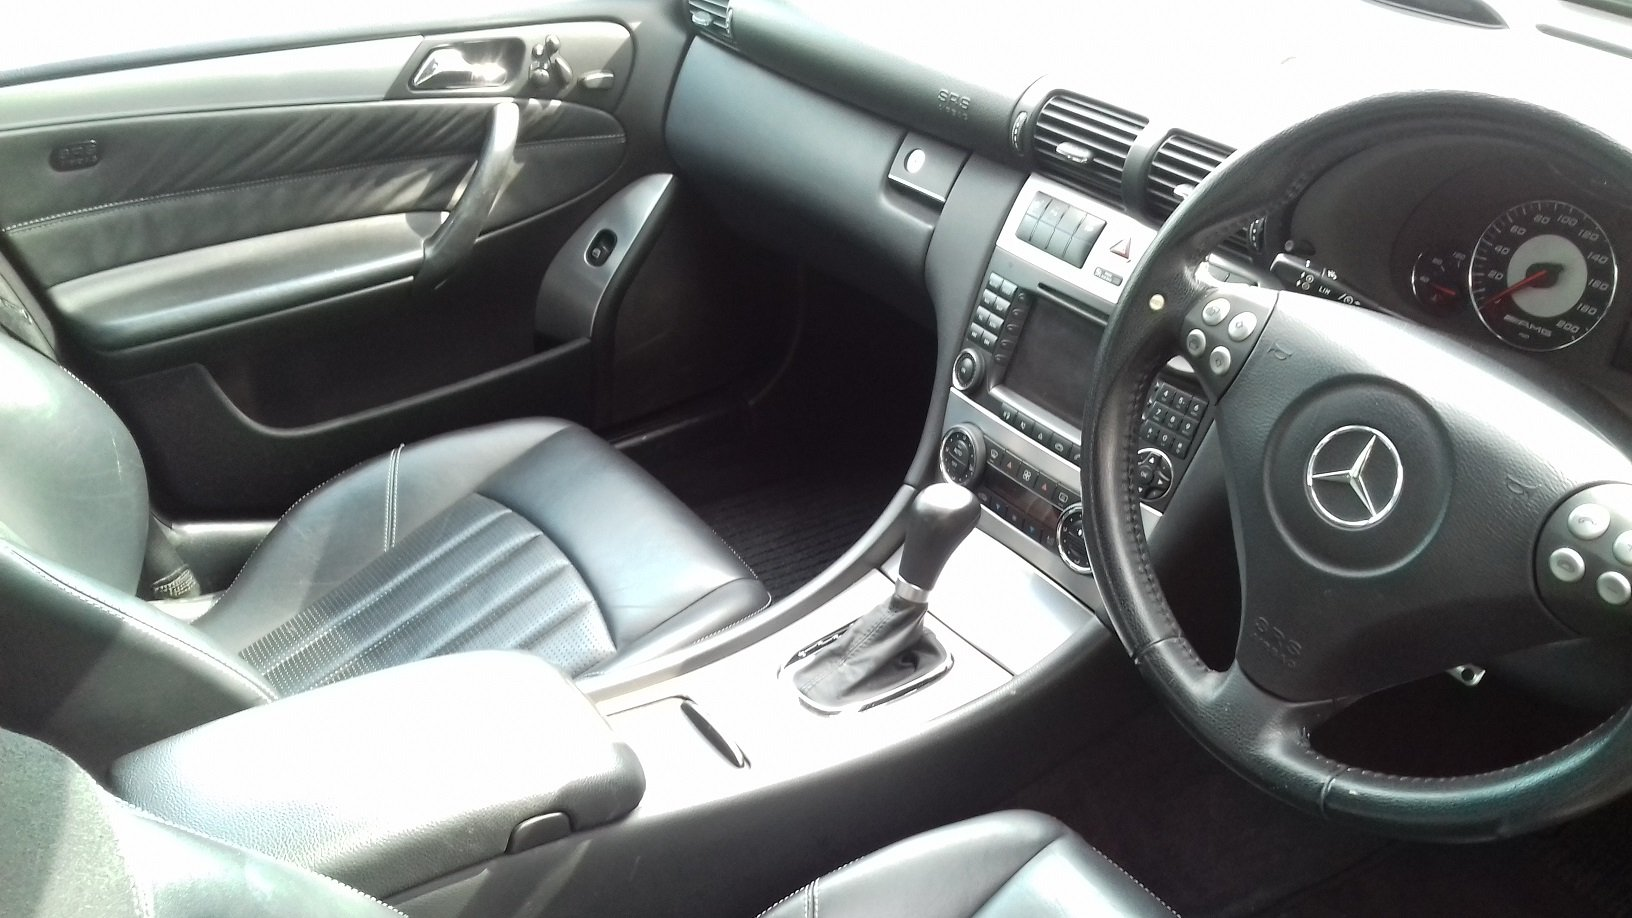 2006 Mercedes-Benz C55 AMG 4dr Full Spec For Sale (picture 4 of 5)